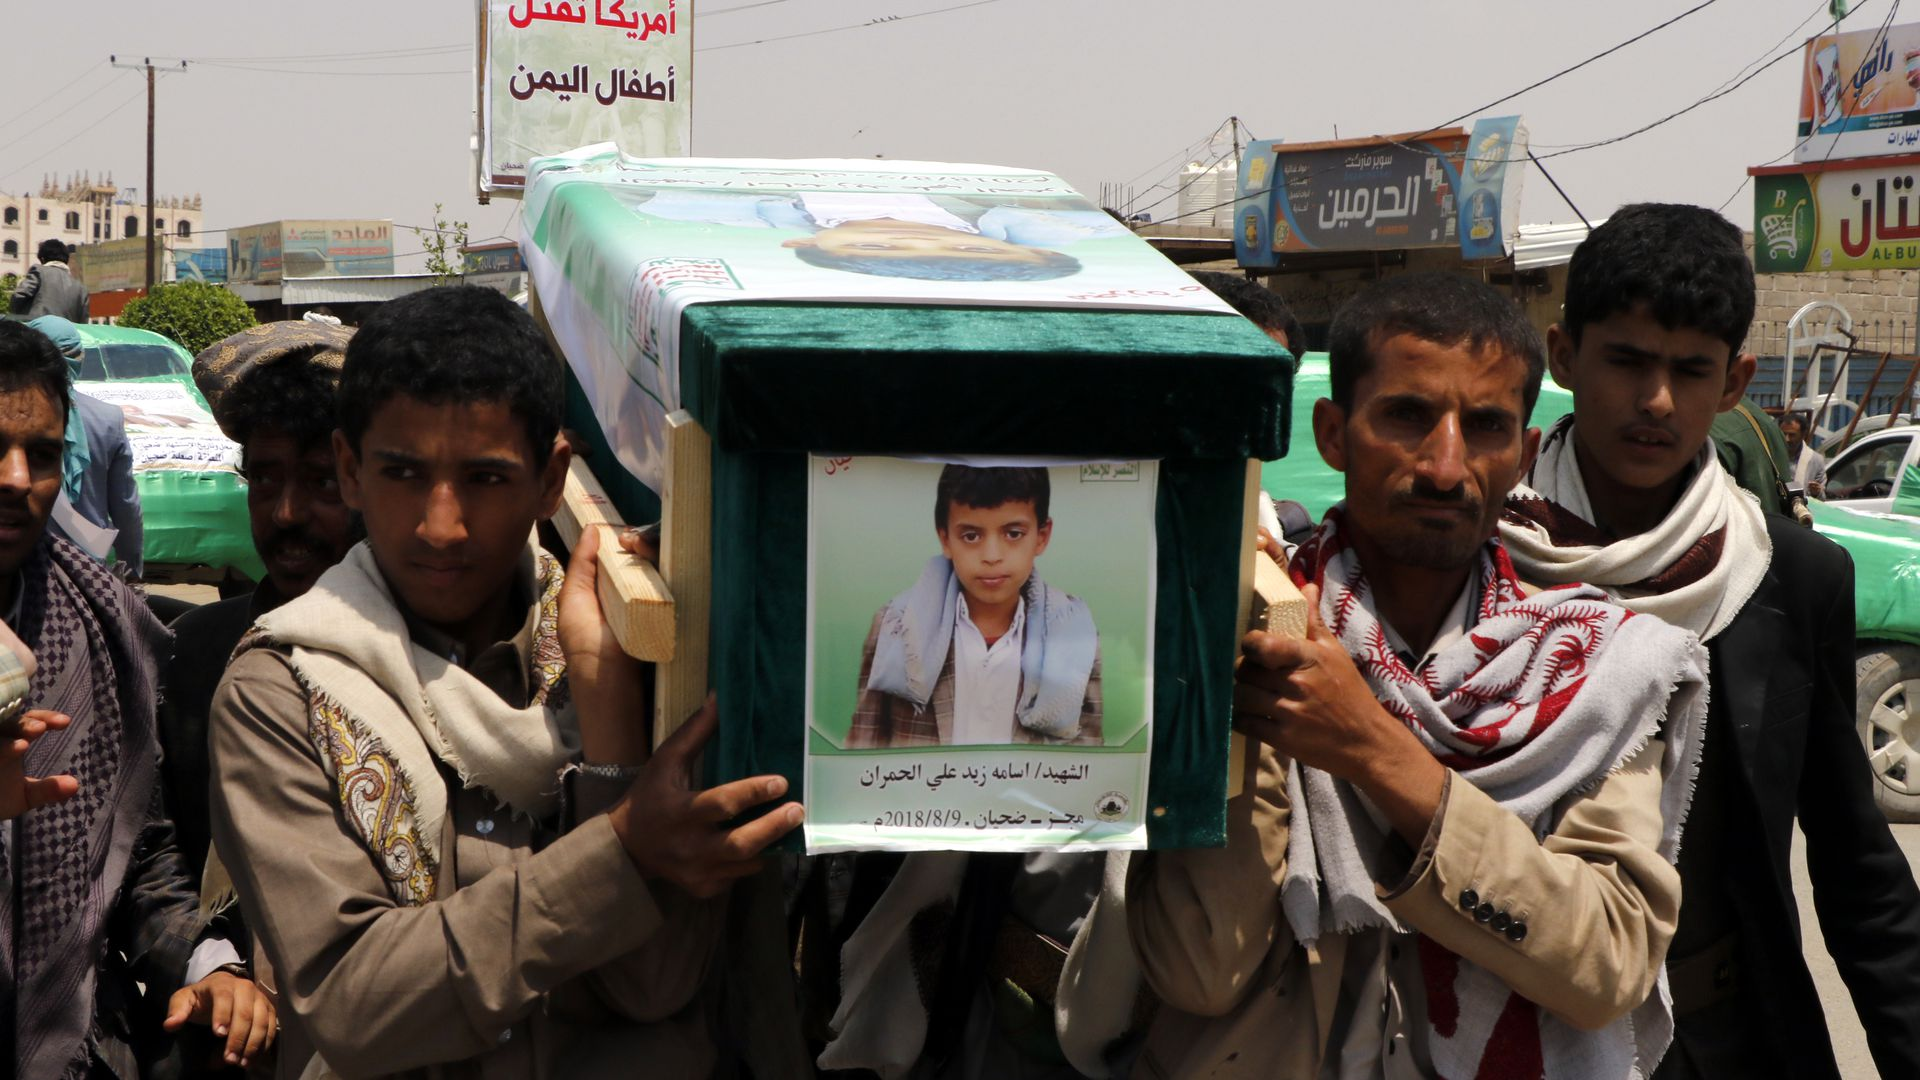 Men carry a coffin with the picture of a child on the front of it.